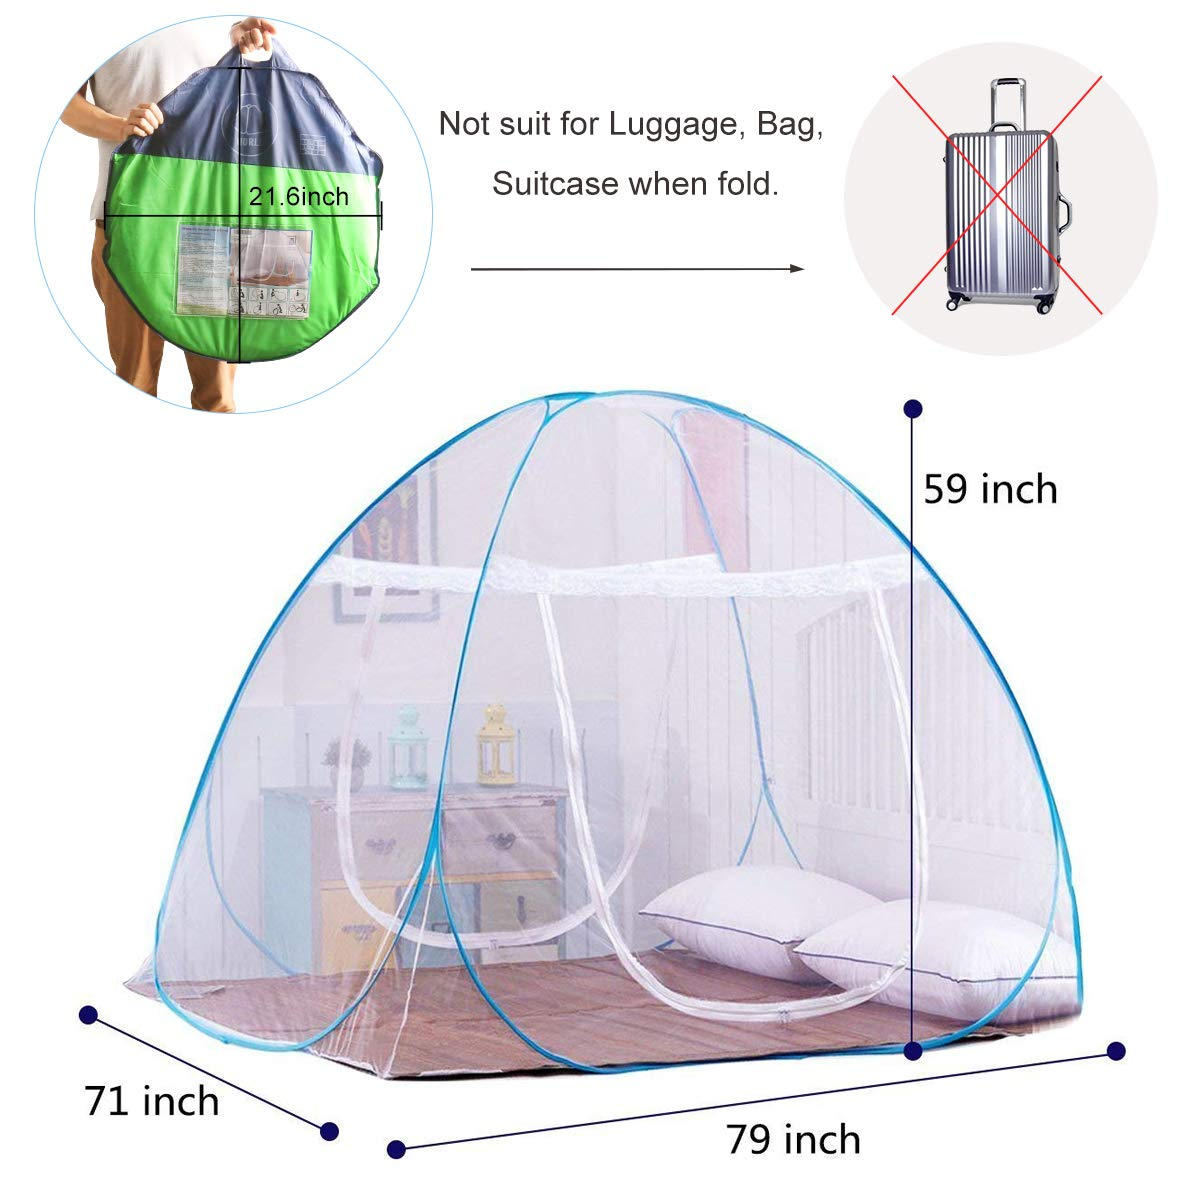 DaTong Pop-Up Mosquito Net Tent for Beds Anti Mosquito Bites Folding Design with Net Bottom for Babys Adults Trip 79 x71x59 inch